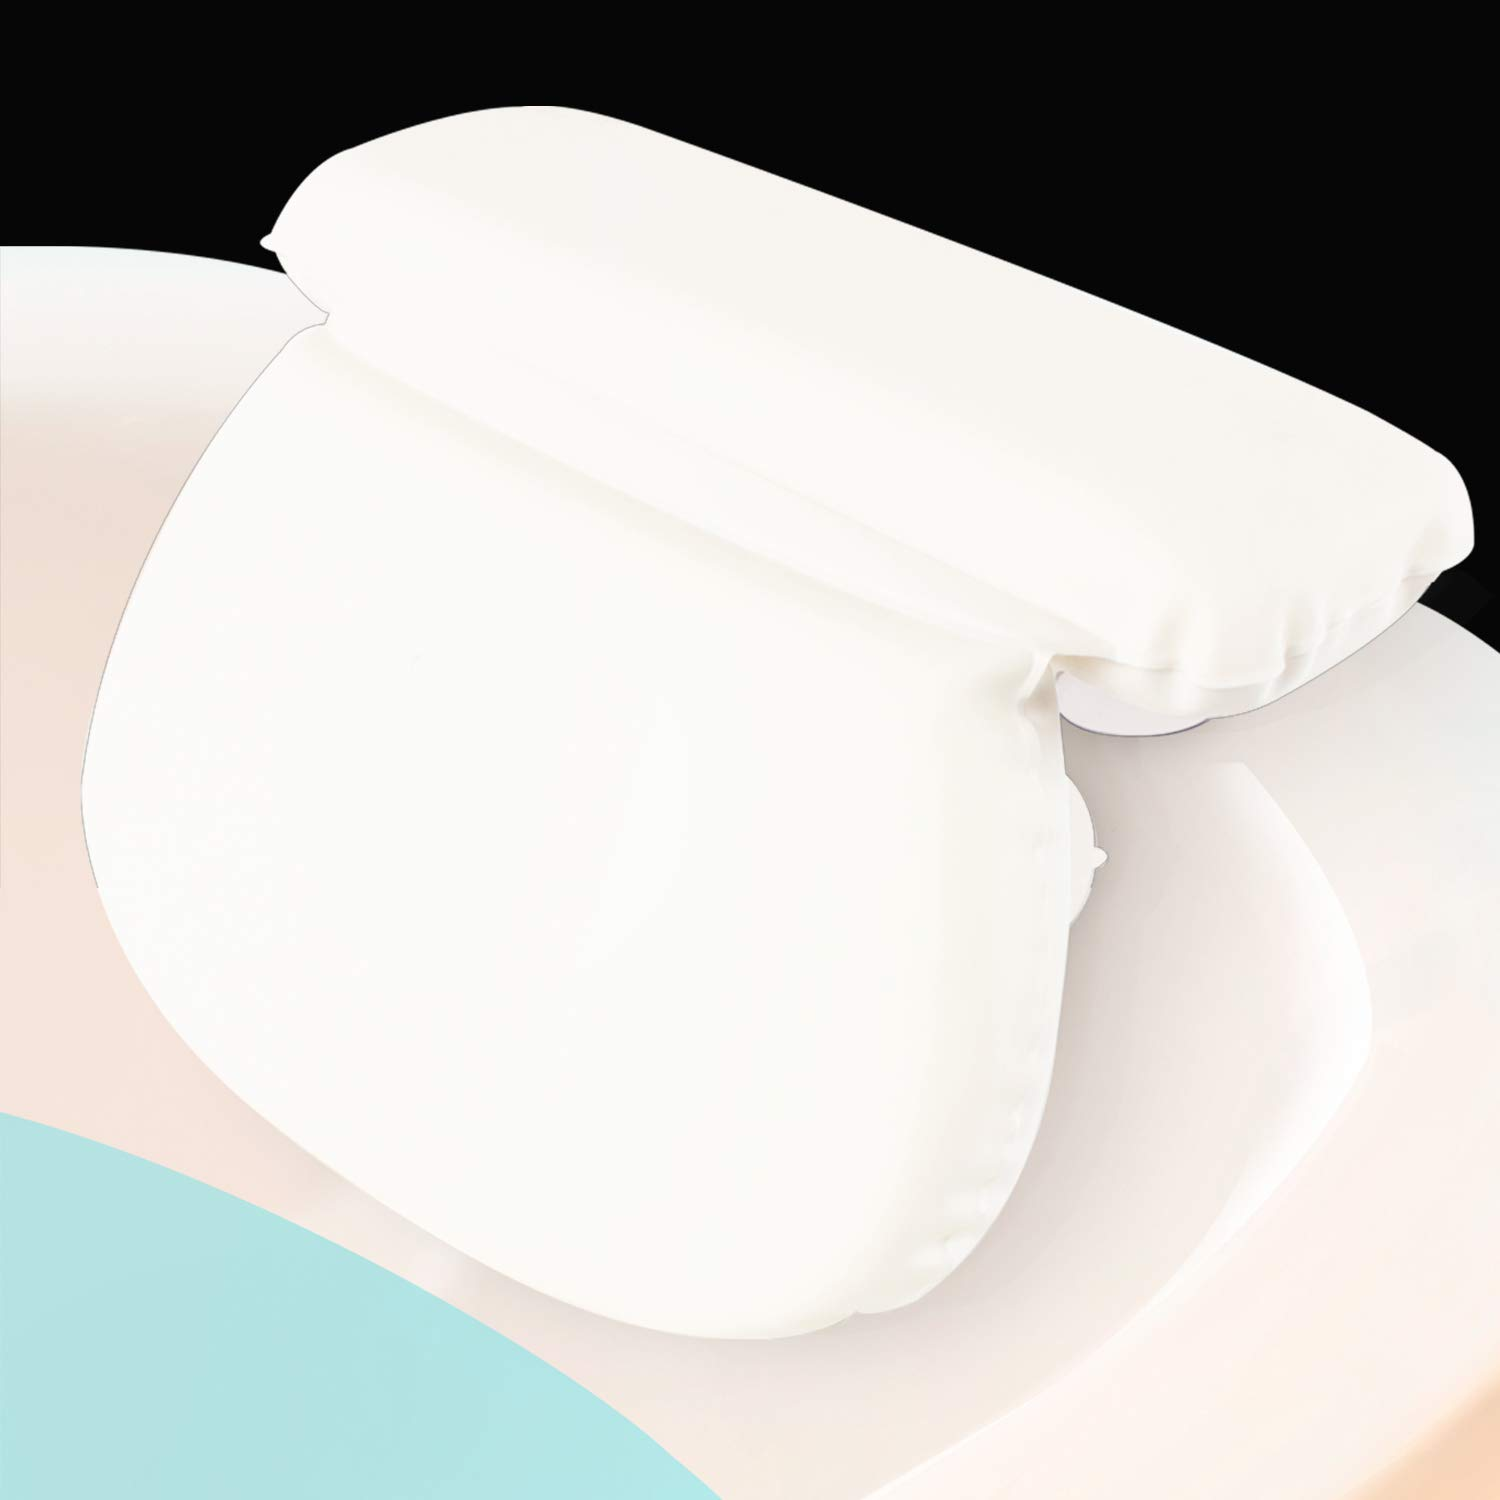 """Xtra-Comfort Bath Pillow (2"""" Thick) - Bathtub Spa Cushion For Neck, Shoulder and Head Support - Hot Bath Tub and Jacuzzi Wedge - Soft Waterproof Headrest With Suction Cups - Quick Dry : Beauty"""